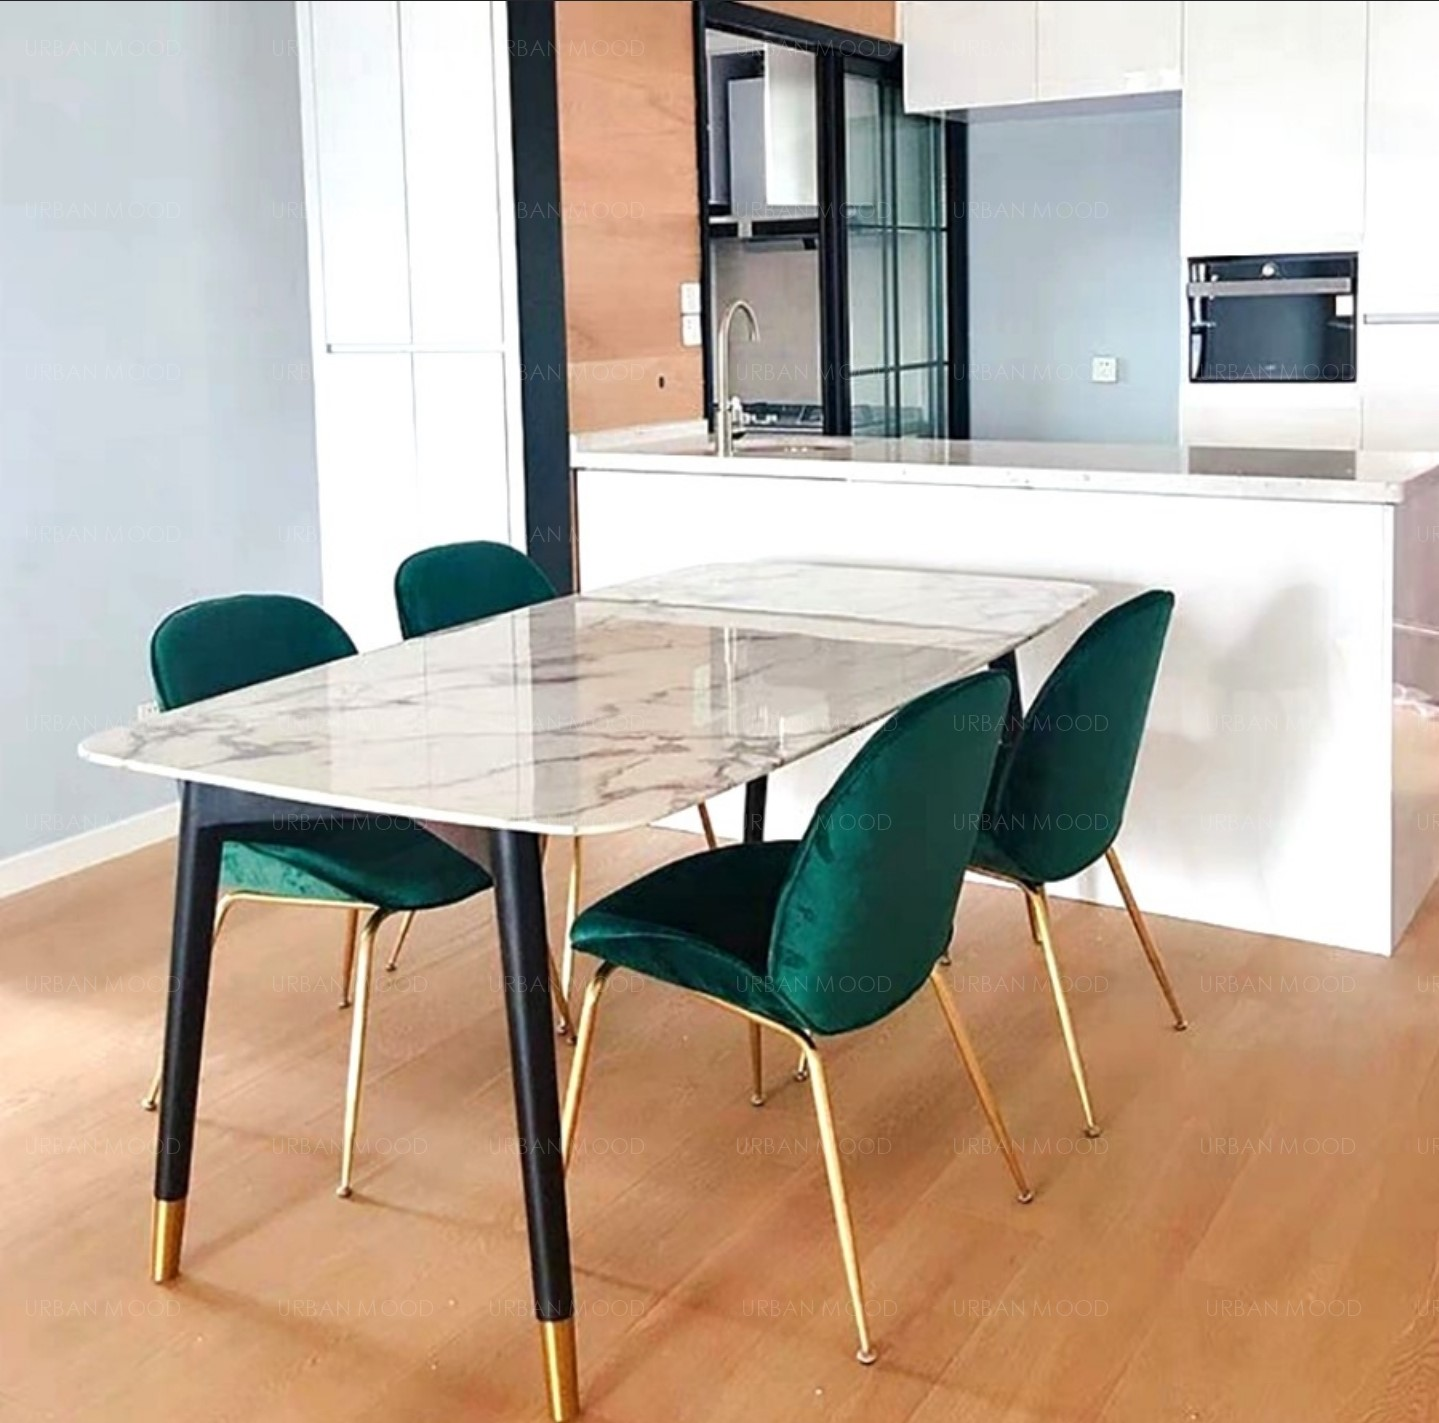 Pre Order MIKAL Marble Dining Table Deliver in 9 9 Weeks ...